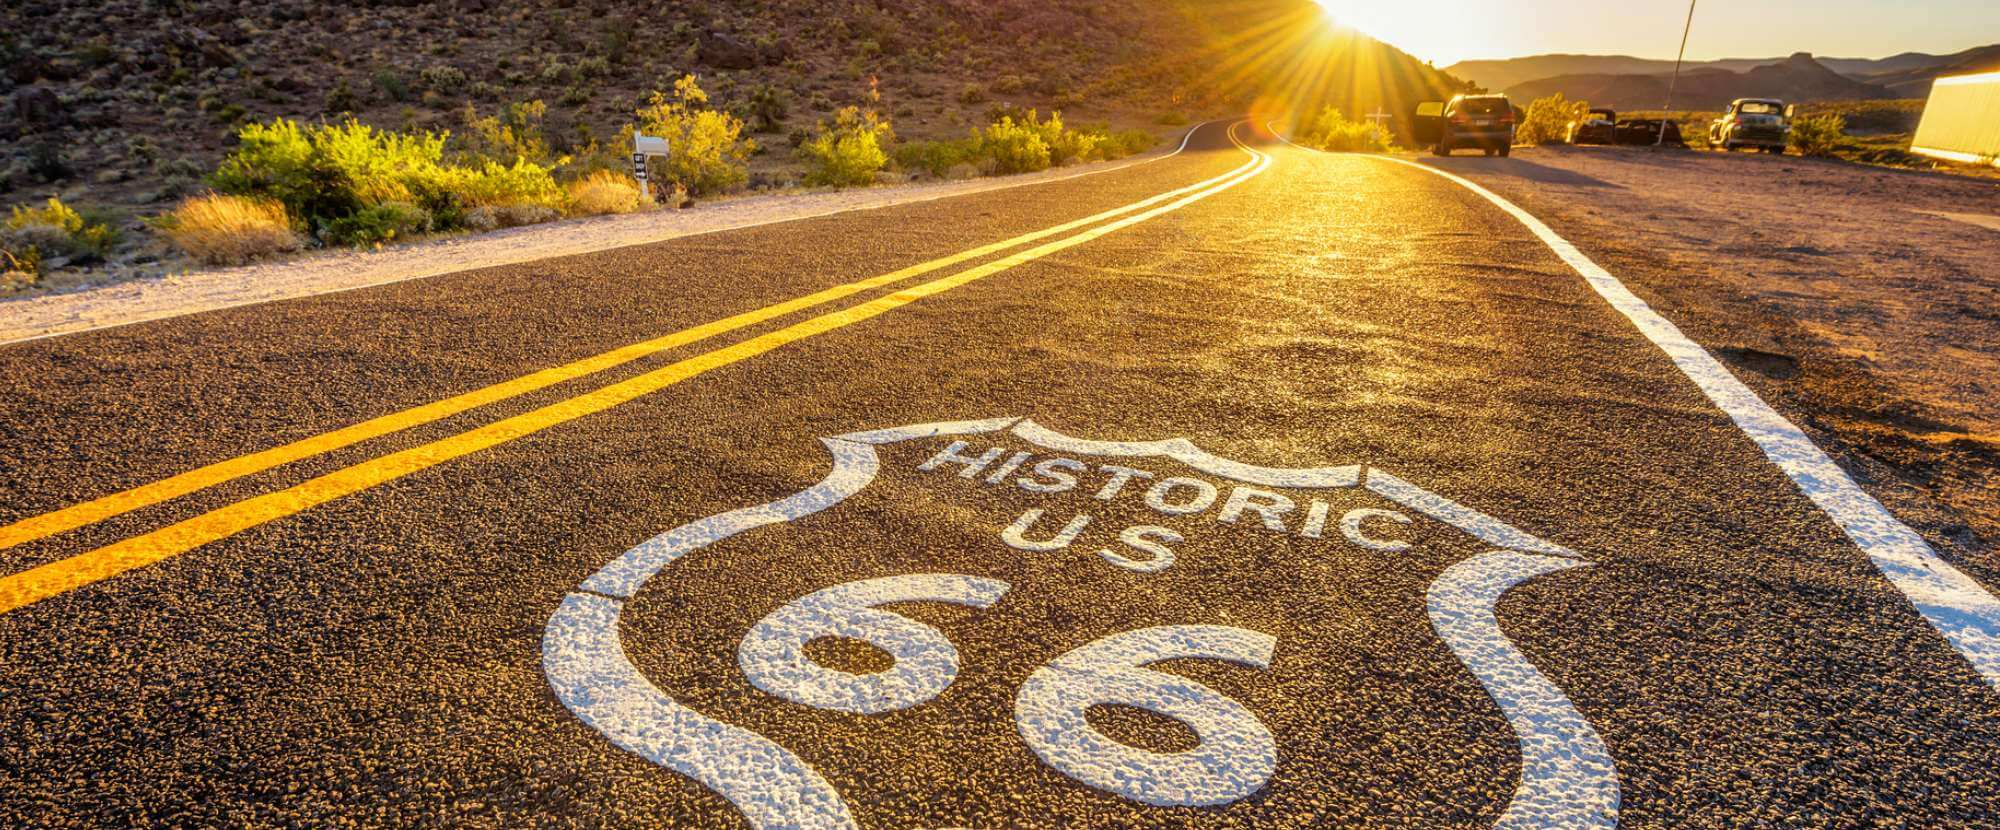 21 Top Things to See & Do on Route 66